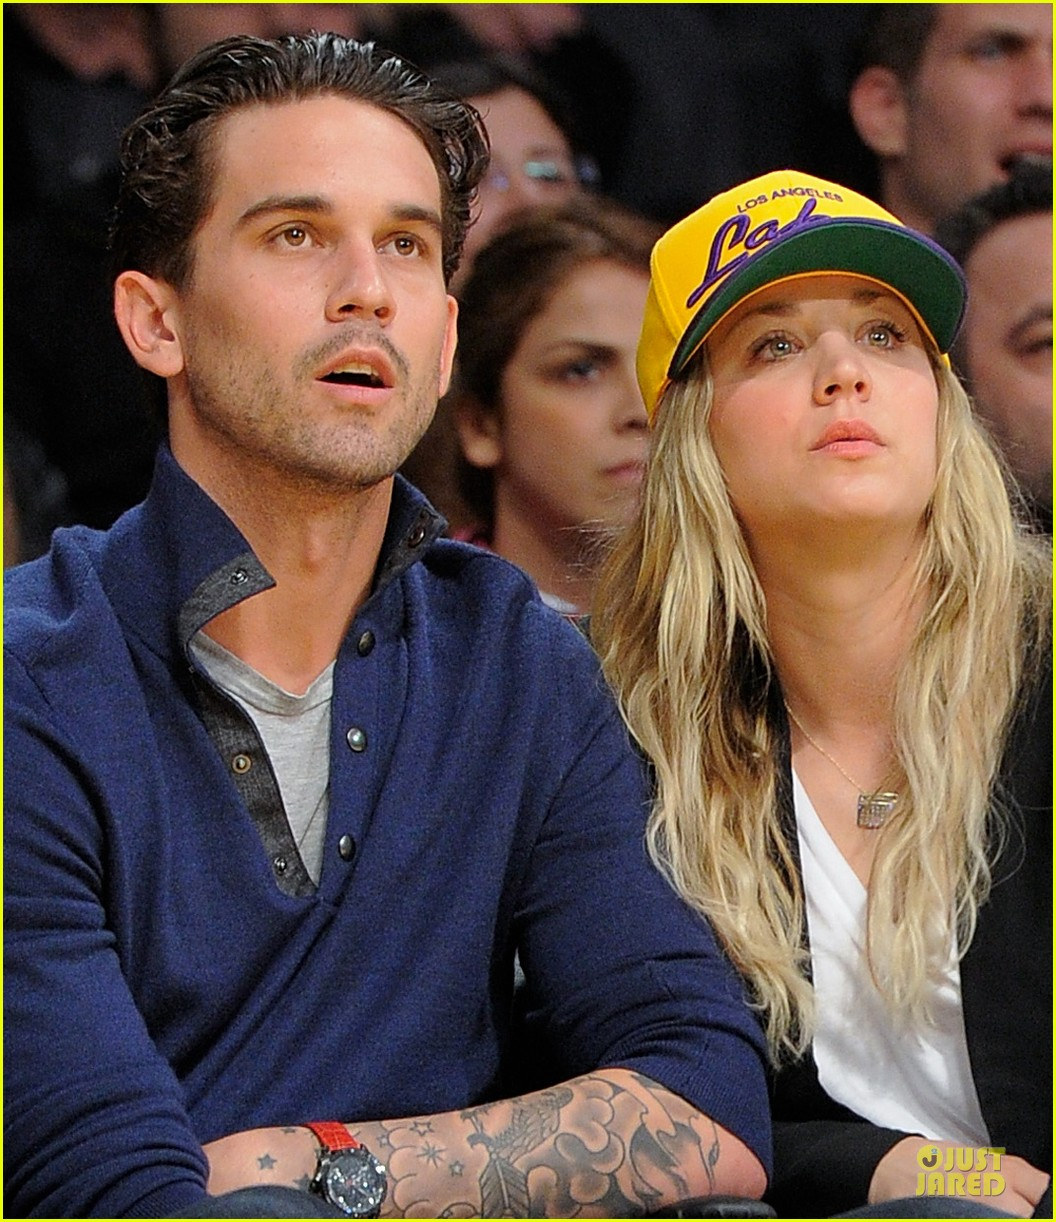 Delicieux Kaley Cuoco Shows Off Wedding Ring At Lakers Game!